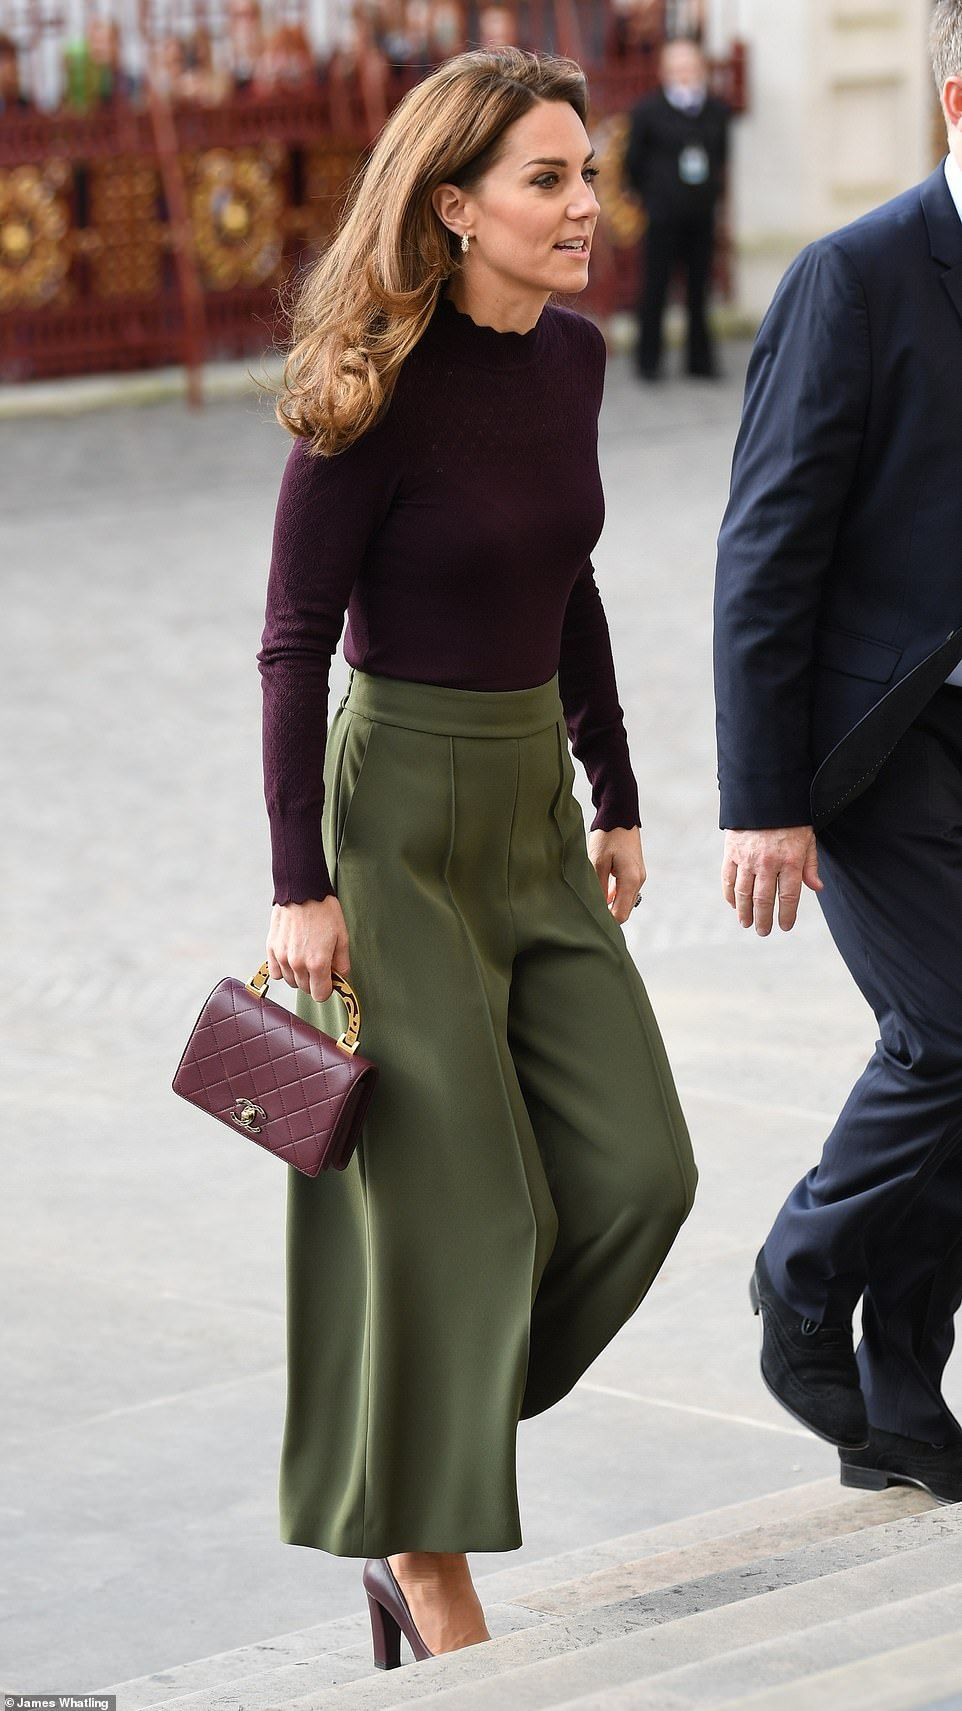 Designer Duchess! Kate Middleton teams her £3K Chanel bag with high street culottes from Jigsaw | Daily Mail Online